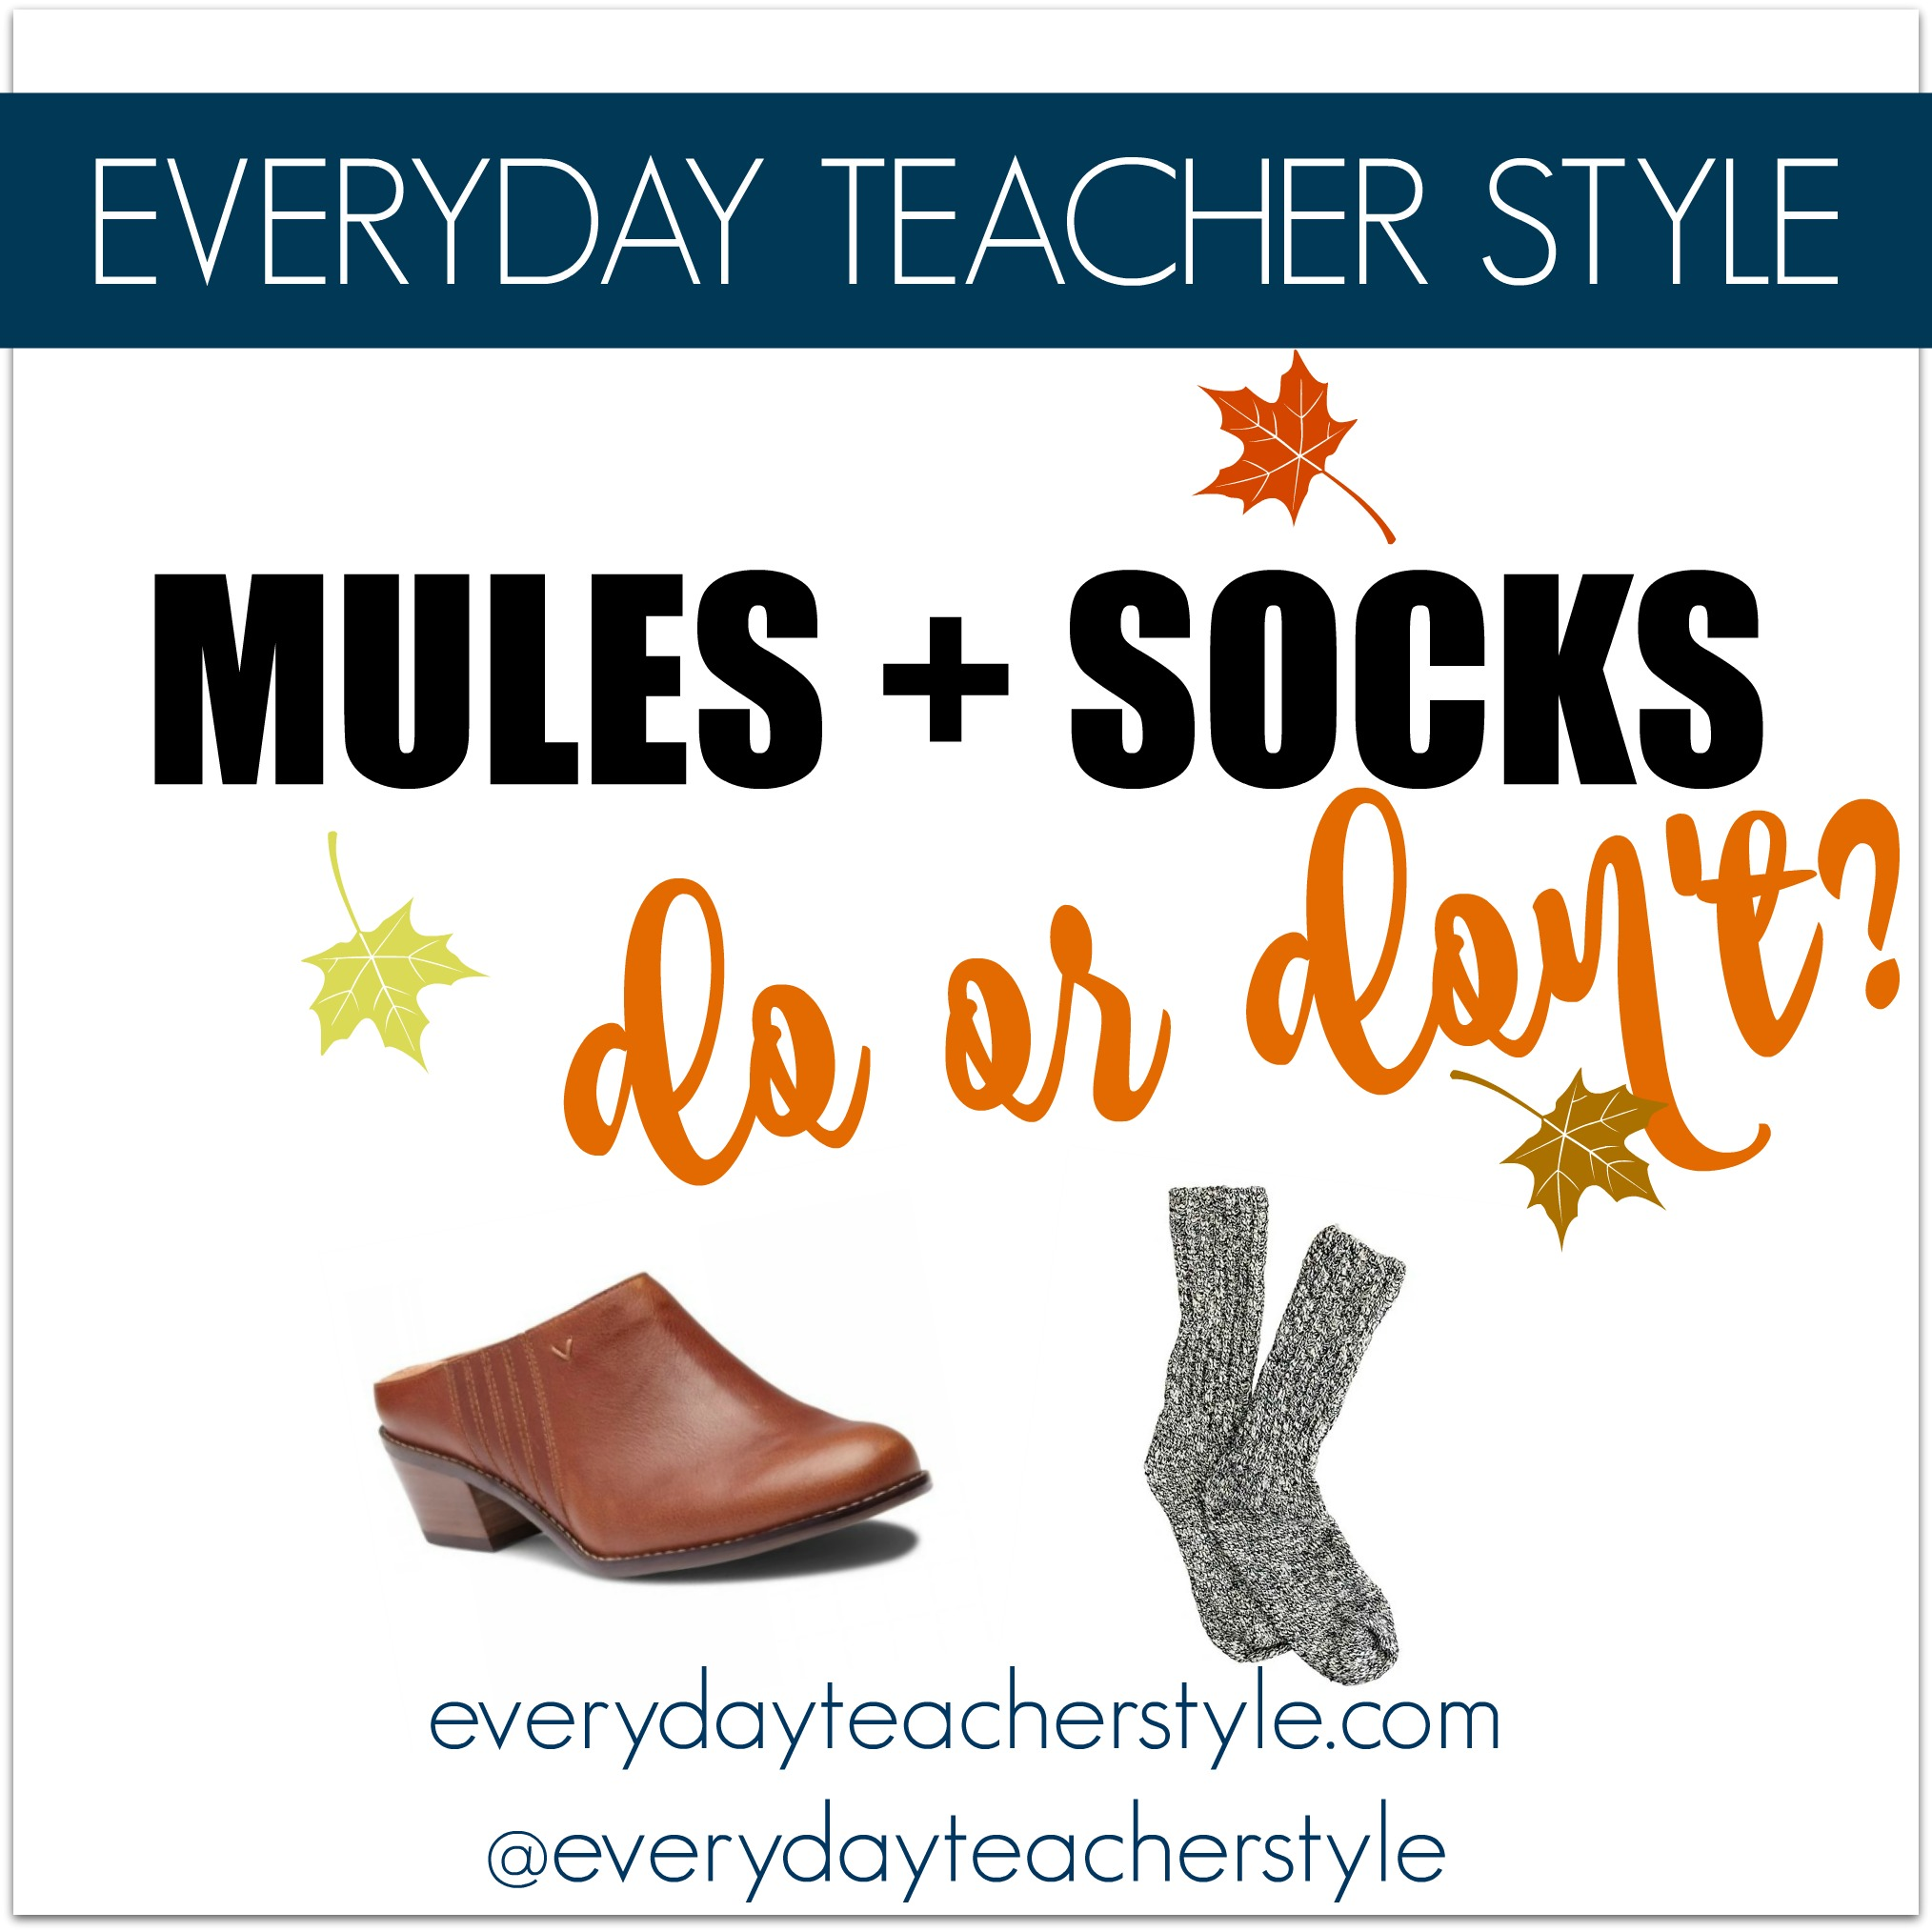 Do or Don't: Socks with Mules